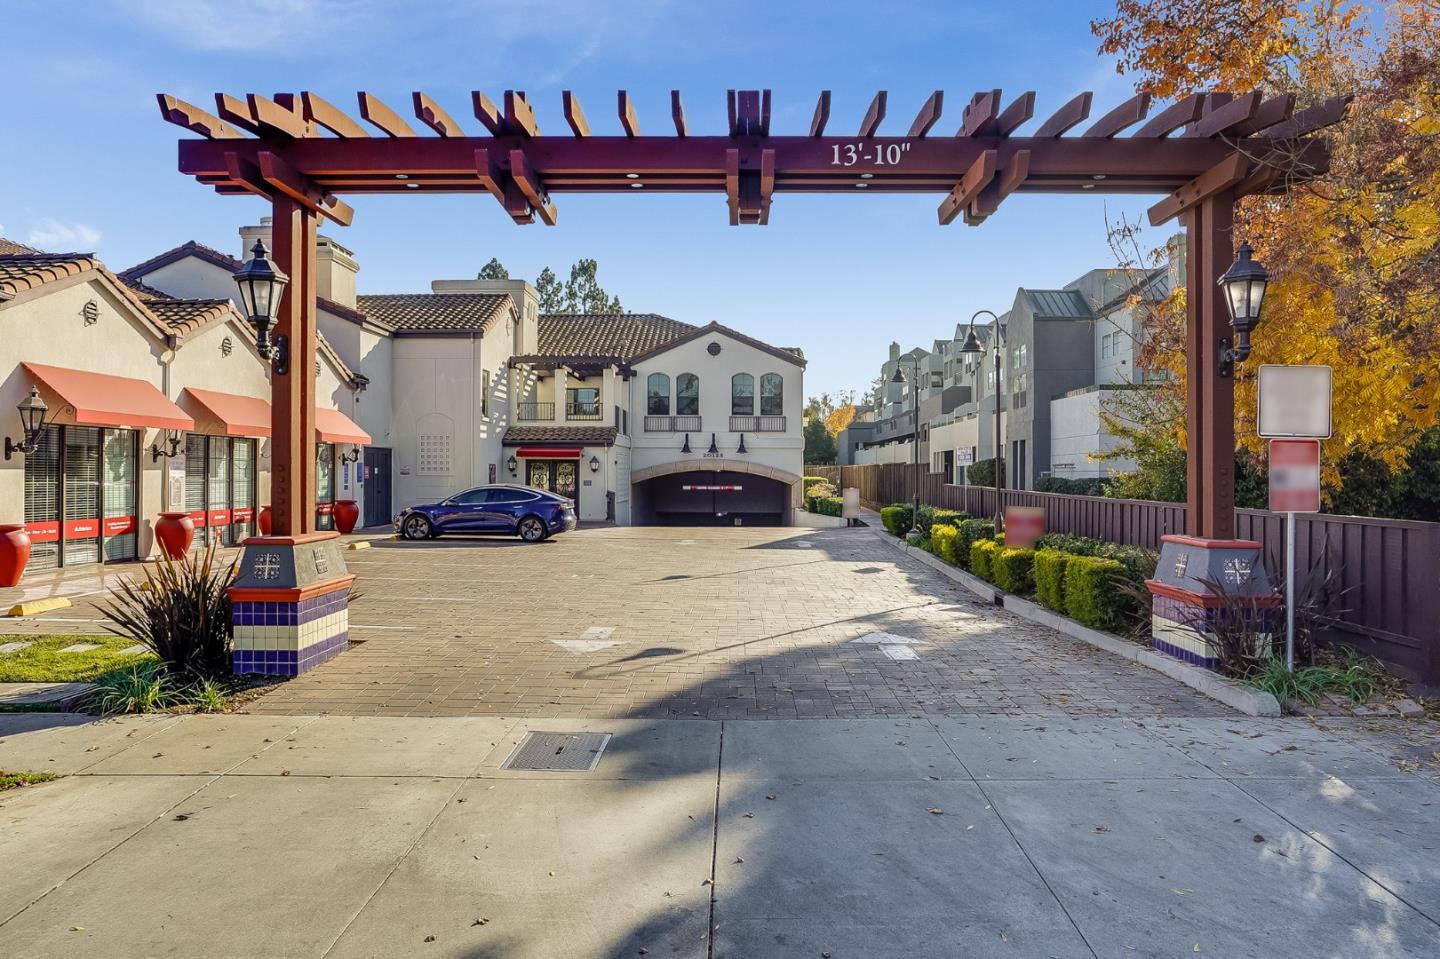 Great opportunity to own this bright and beautifully designed top floor unit condo located in the Heart of Cupertino. This home is conveniently located near the great Cupertino schools, library, Apple, City Hall, restaurants, shopping and entertainment. The END unit has 3 bedrooms, 2 bathrooms with high ceilings and a walk-in closet in the Master.  The unit also includes stainless steel appliances in the kitchen, double pane windows, washer/dryer in unit, recessed lightings, a spacious living/dining room combo, large balcony and 2 car underground parking. The complex is in a secured building with fitness room.